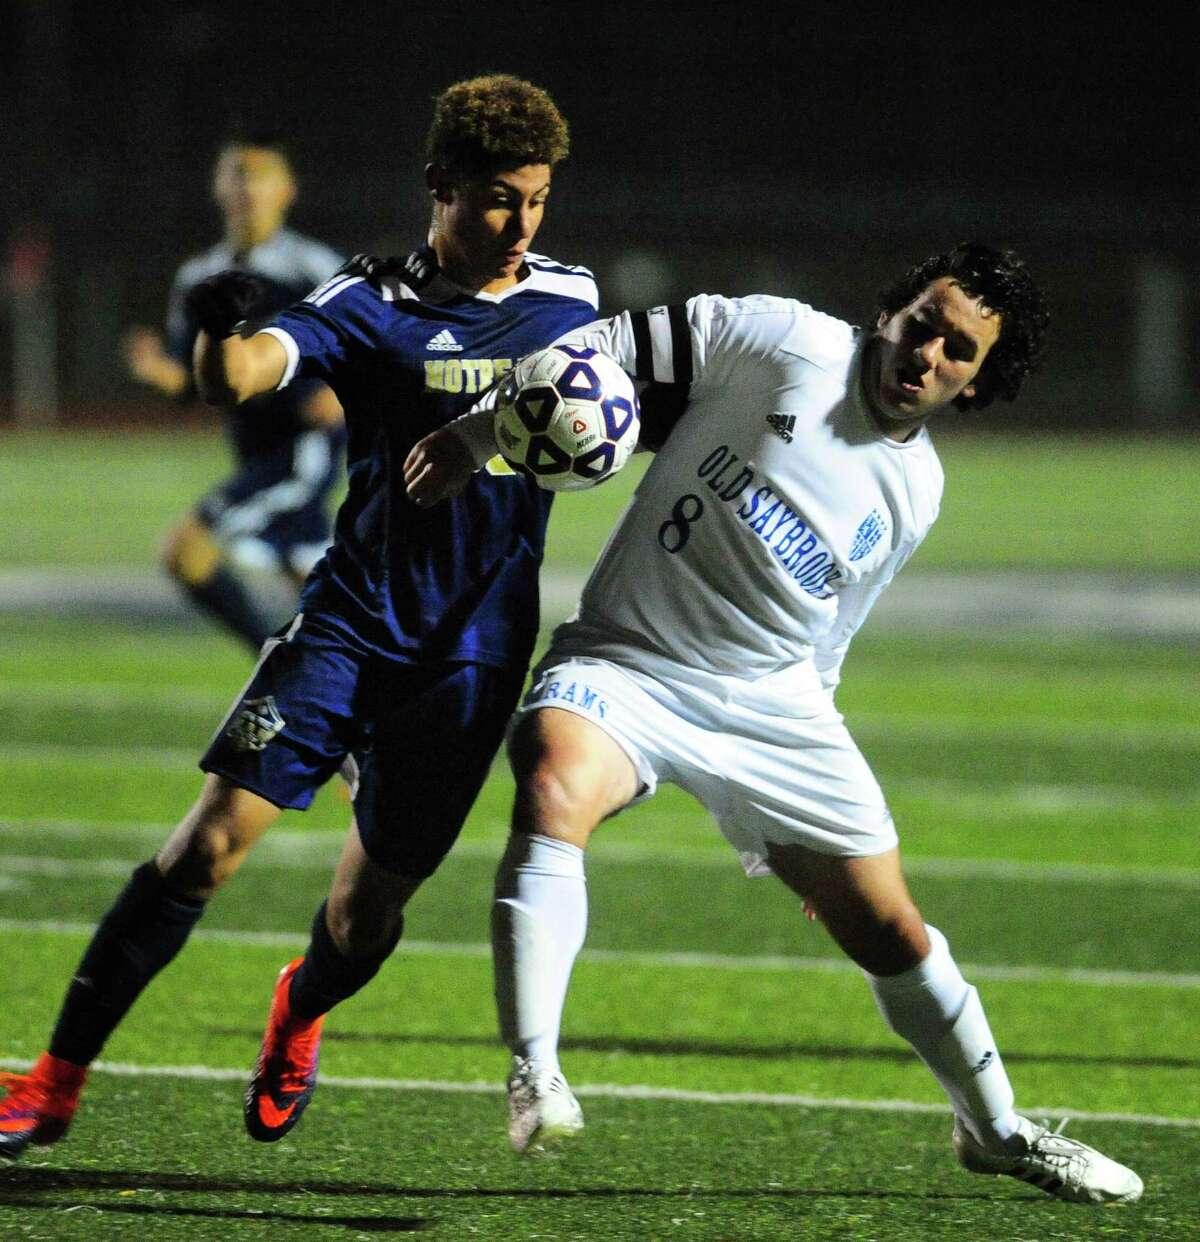 Old Saybrook's Ben VanVliet, right, tries to head off Notre Dame of Fairfield's Felipe Canzian during Class S boys soccer semi-final action in West Haven, Conn. on Tuesday Nov. 15, 2016.